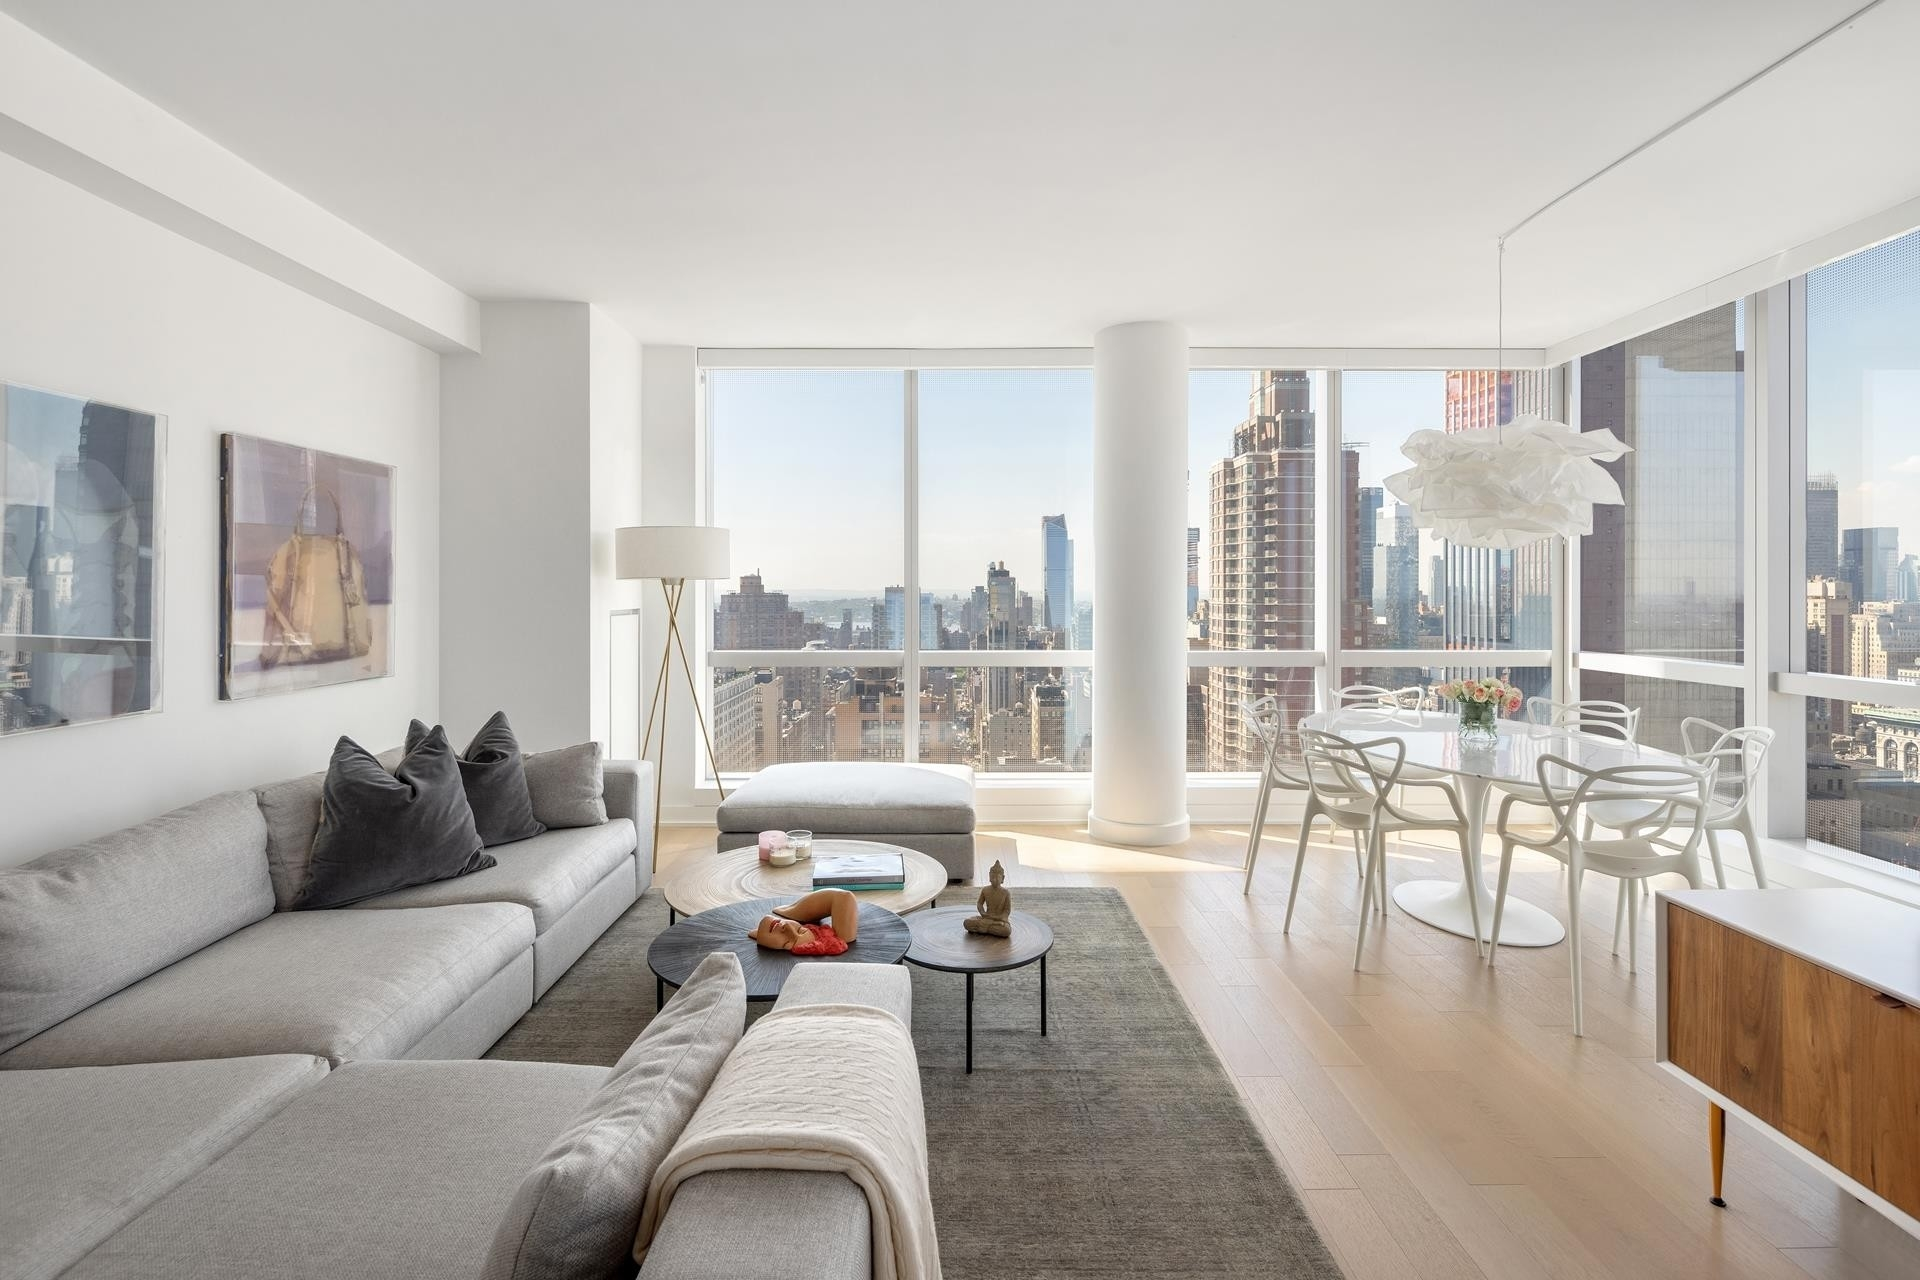 Property at 400 Park Avenue South, 37C New York